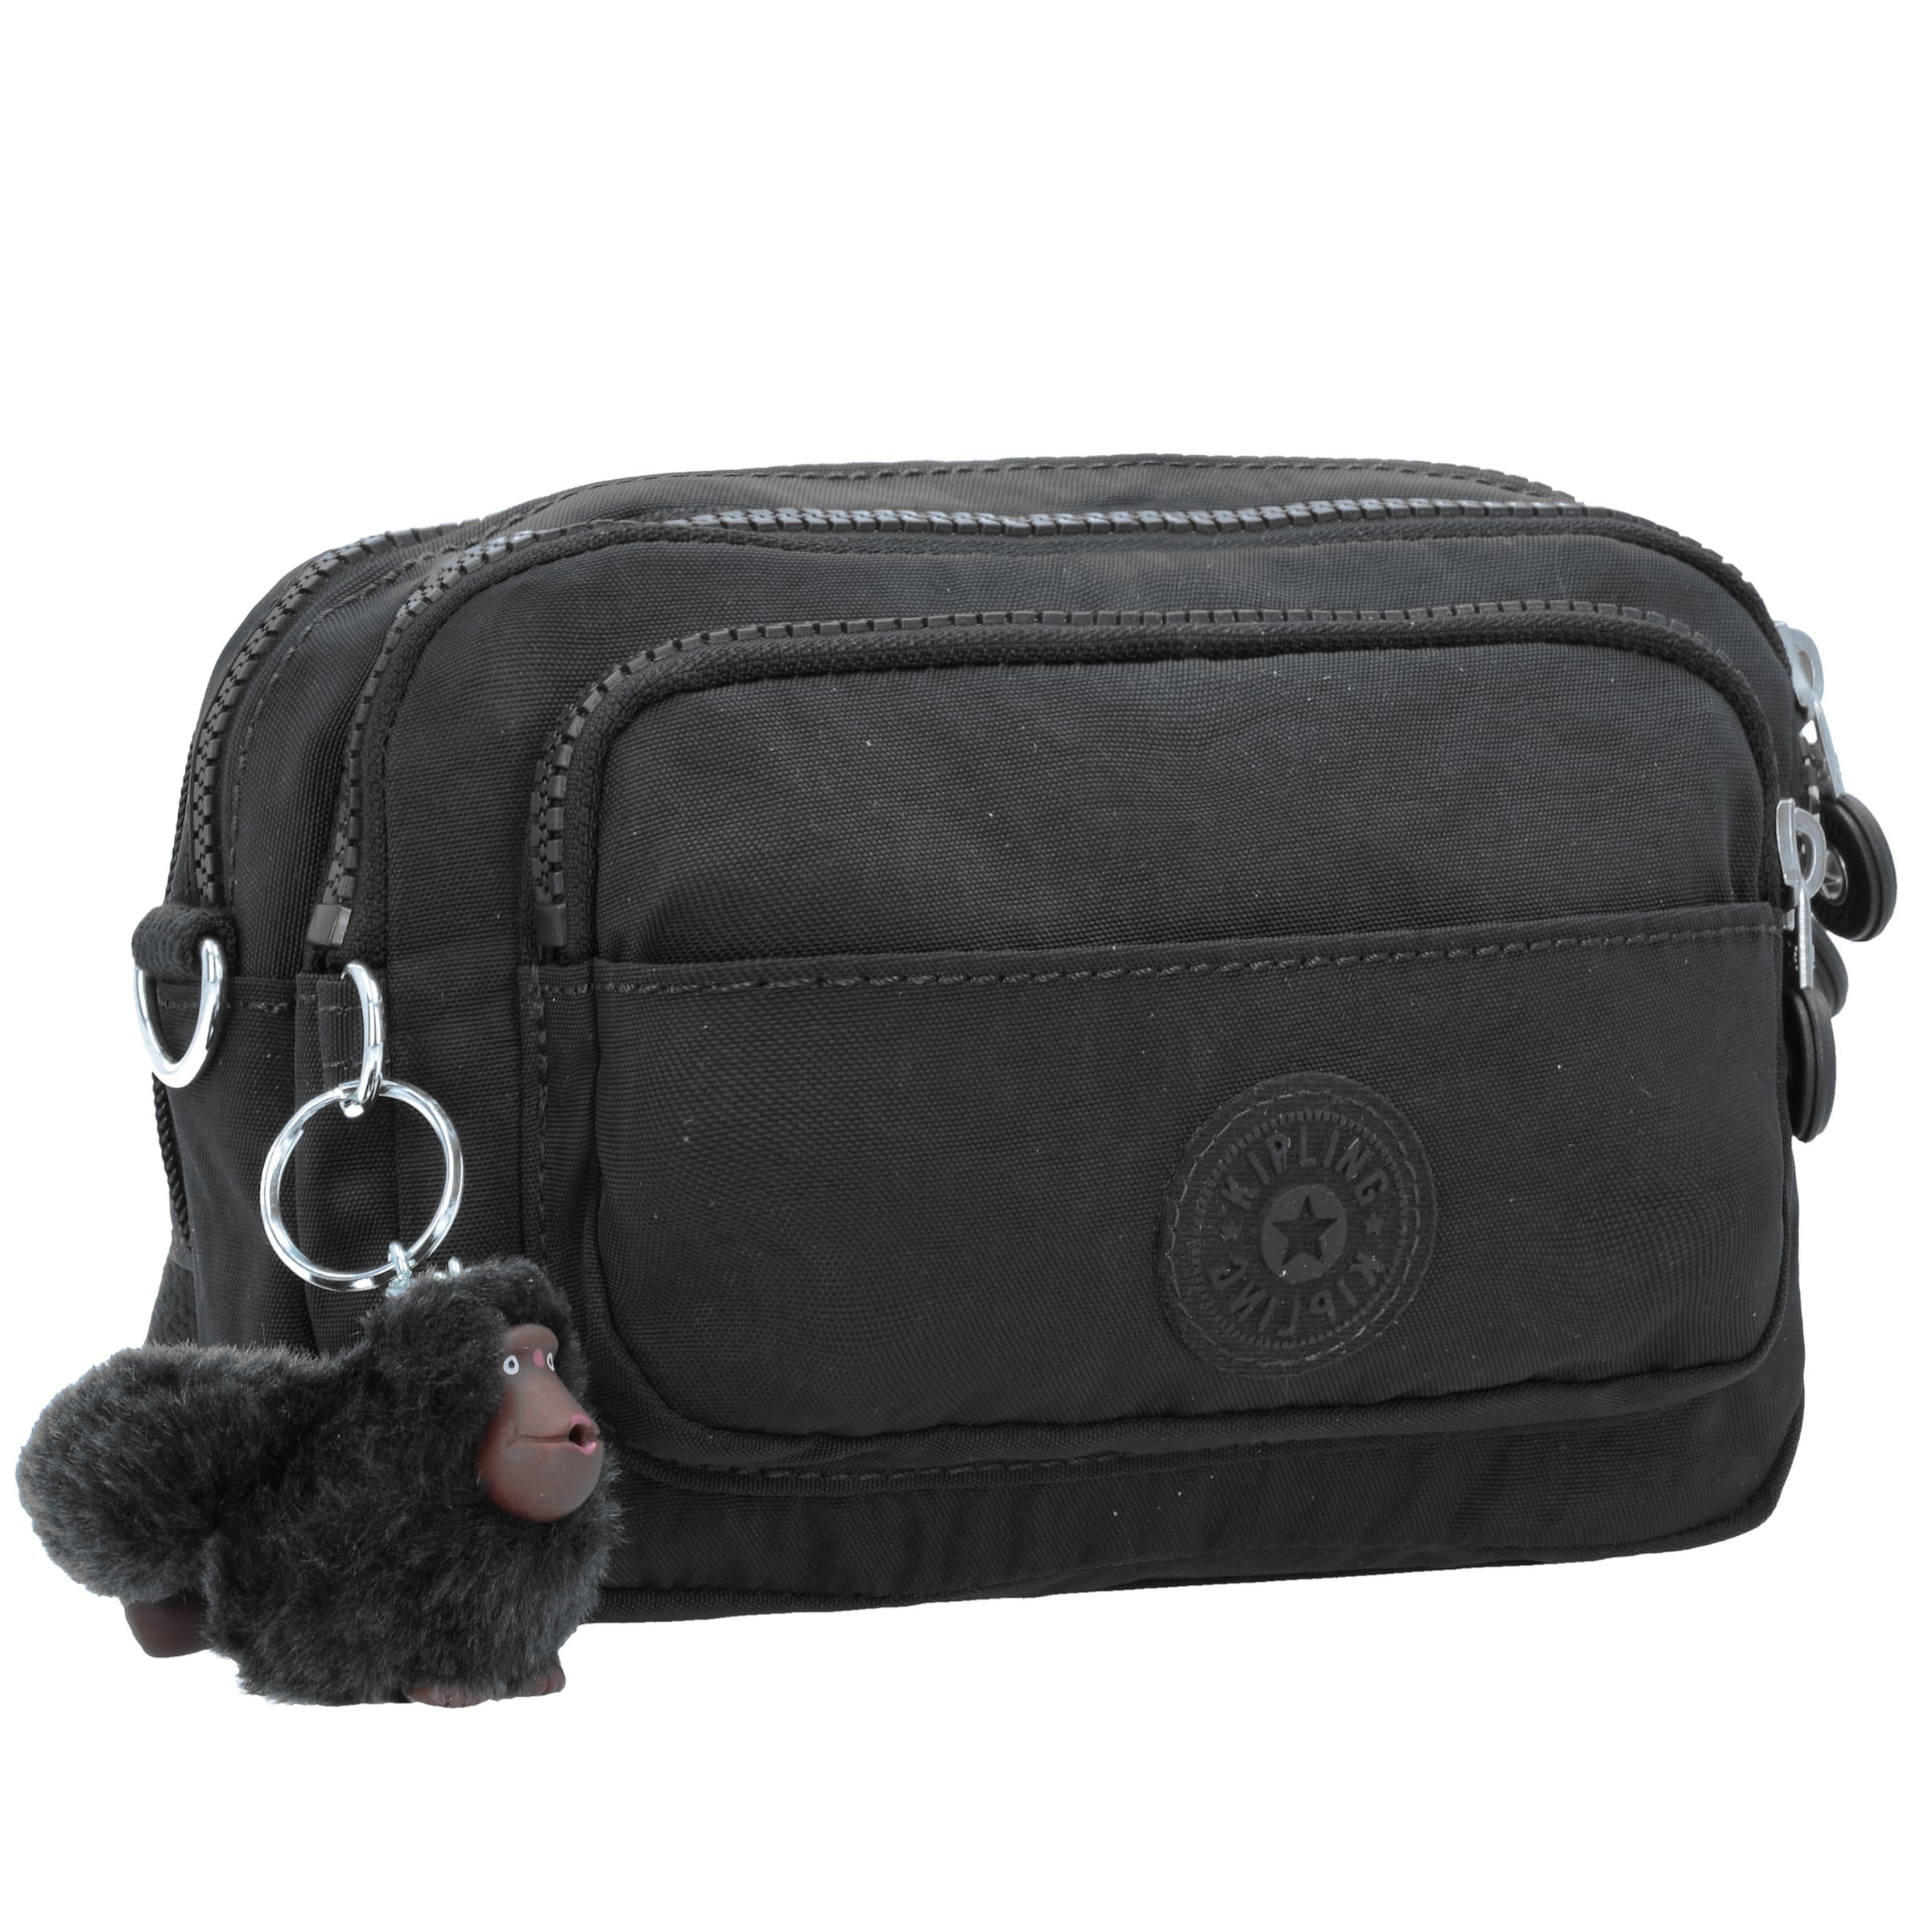 cm G眉rteltasche Basic 20 Travel KIPLING 18 KIPLING Basic Multiple pq8nzB